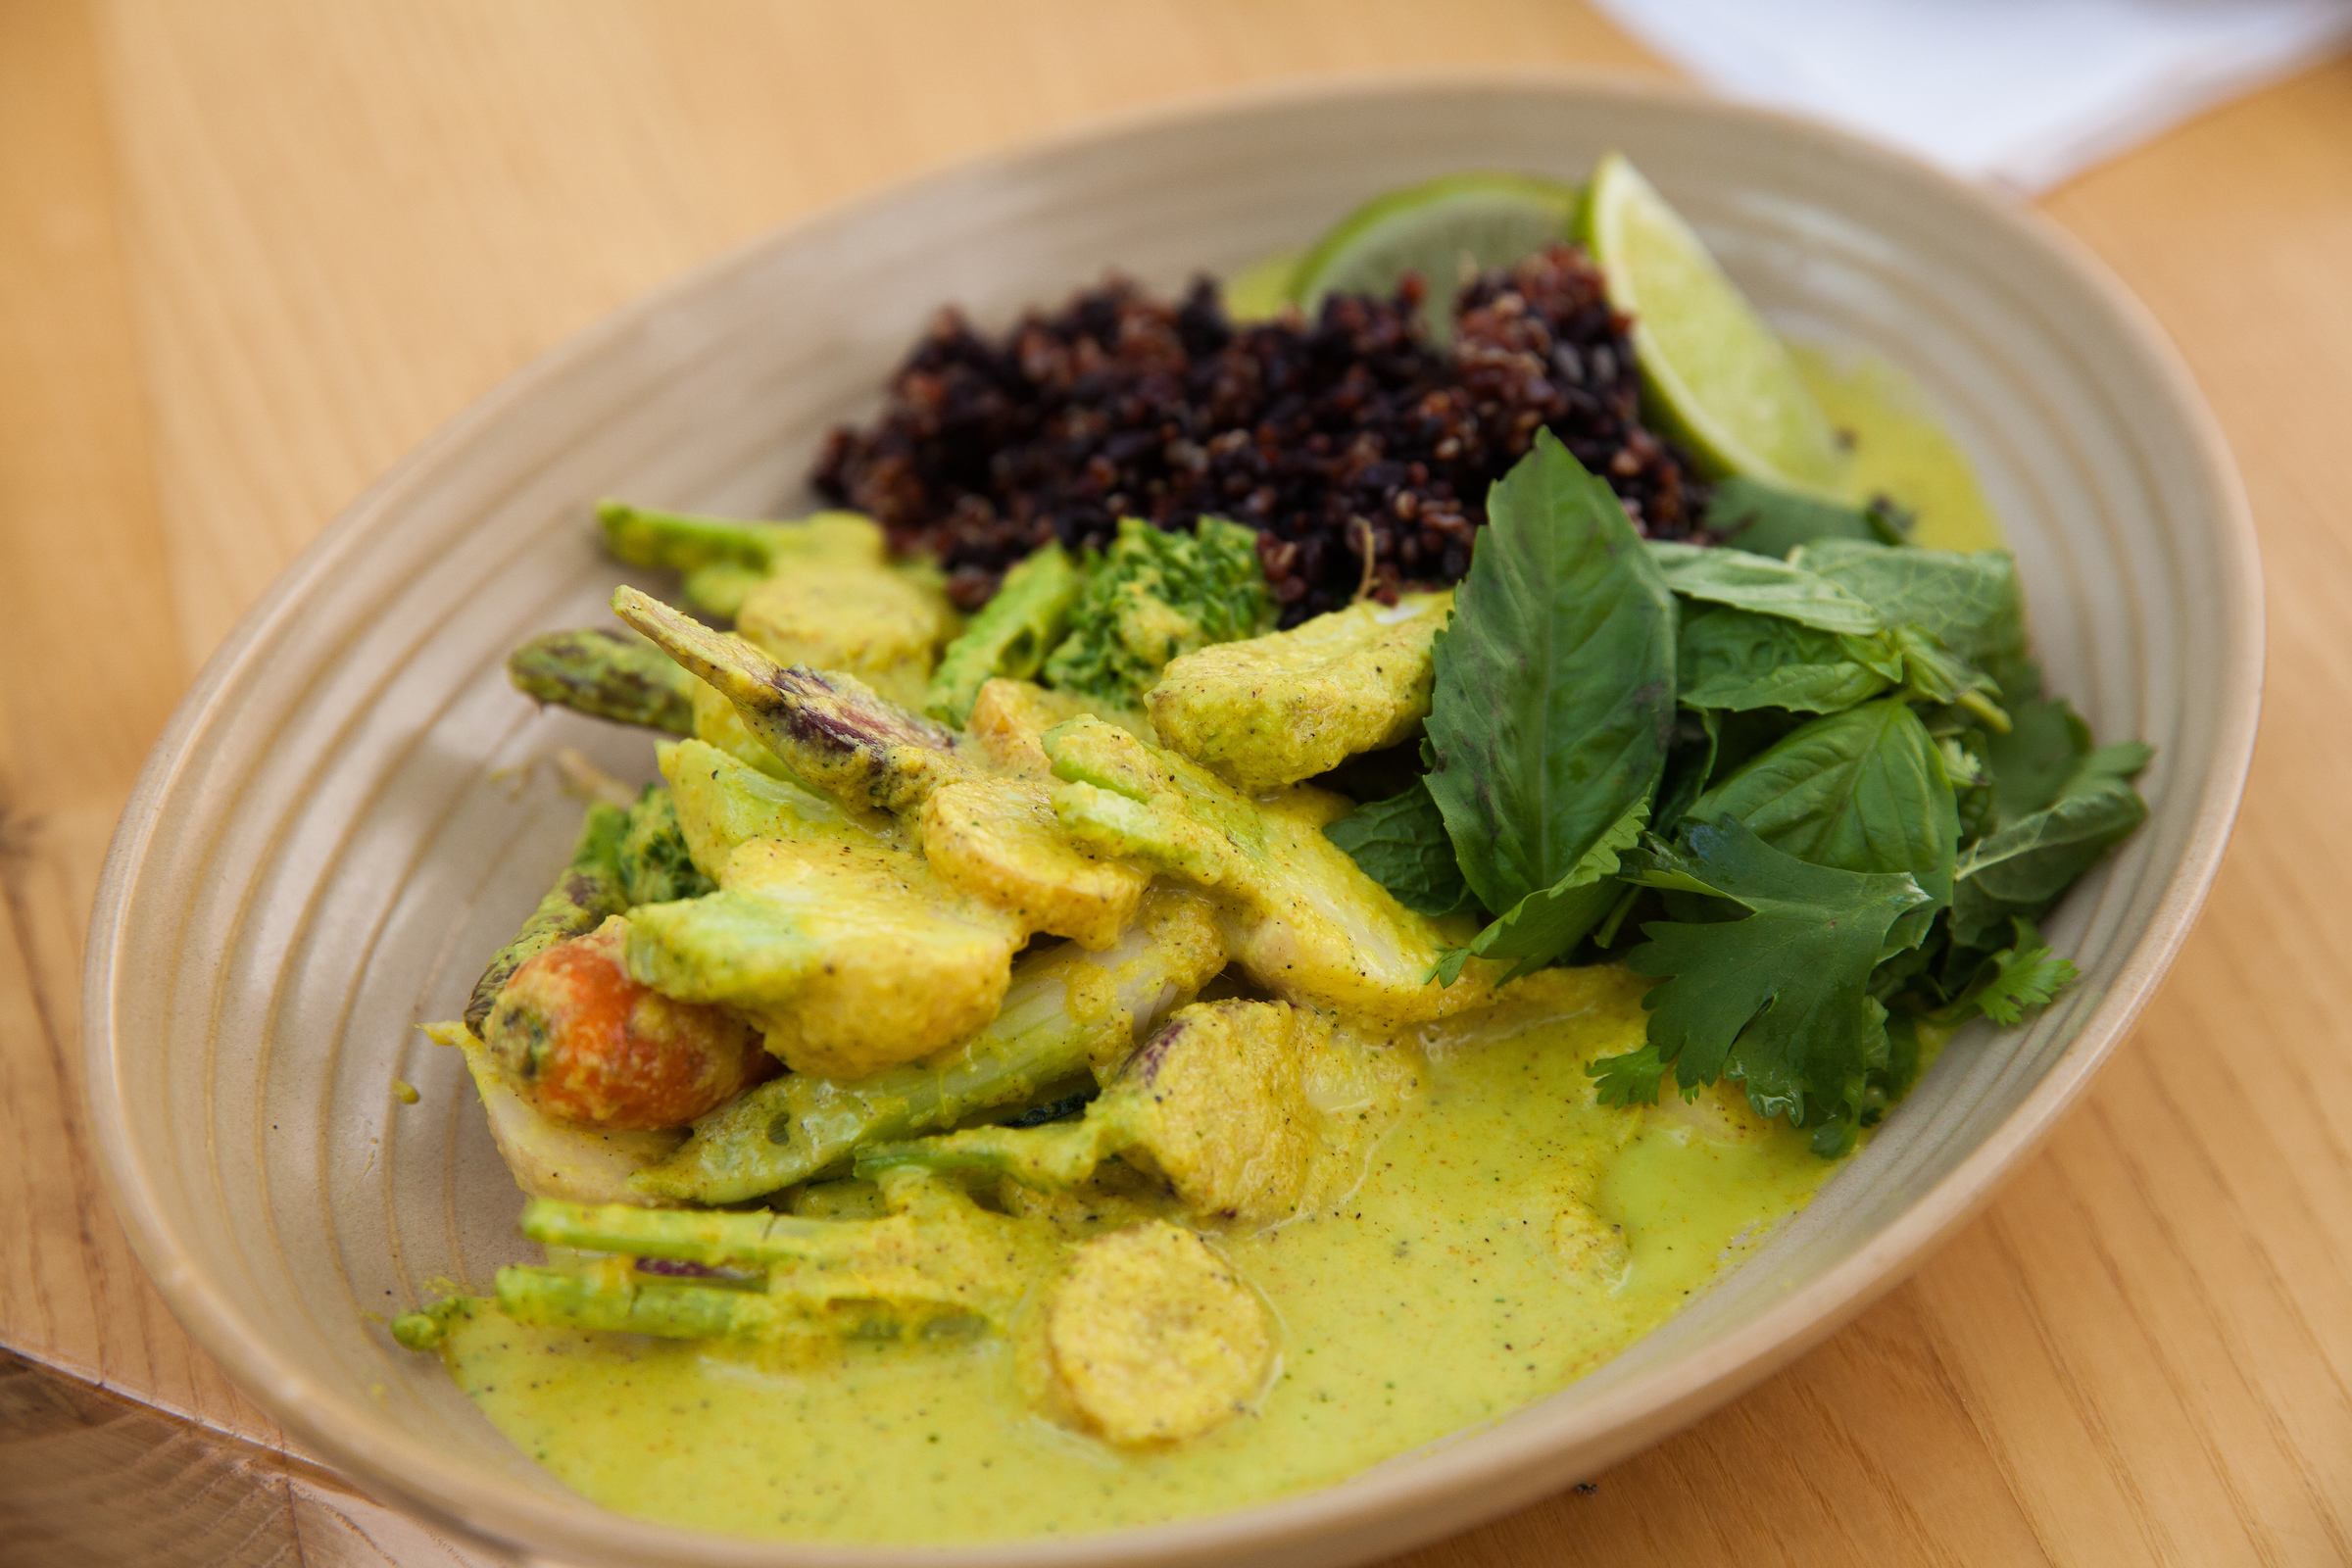 Vegetables in a green curry sauce with herbs lime wedges and black quinoa